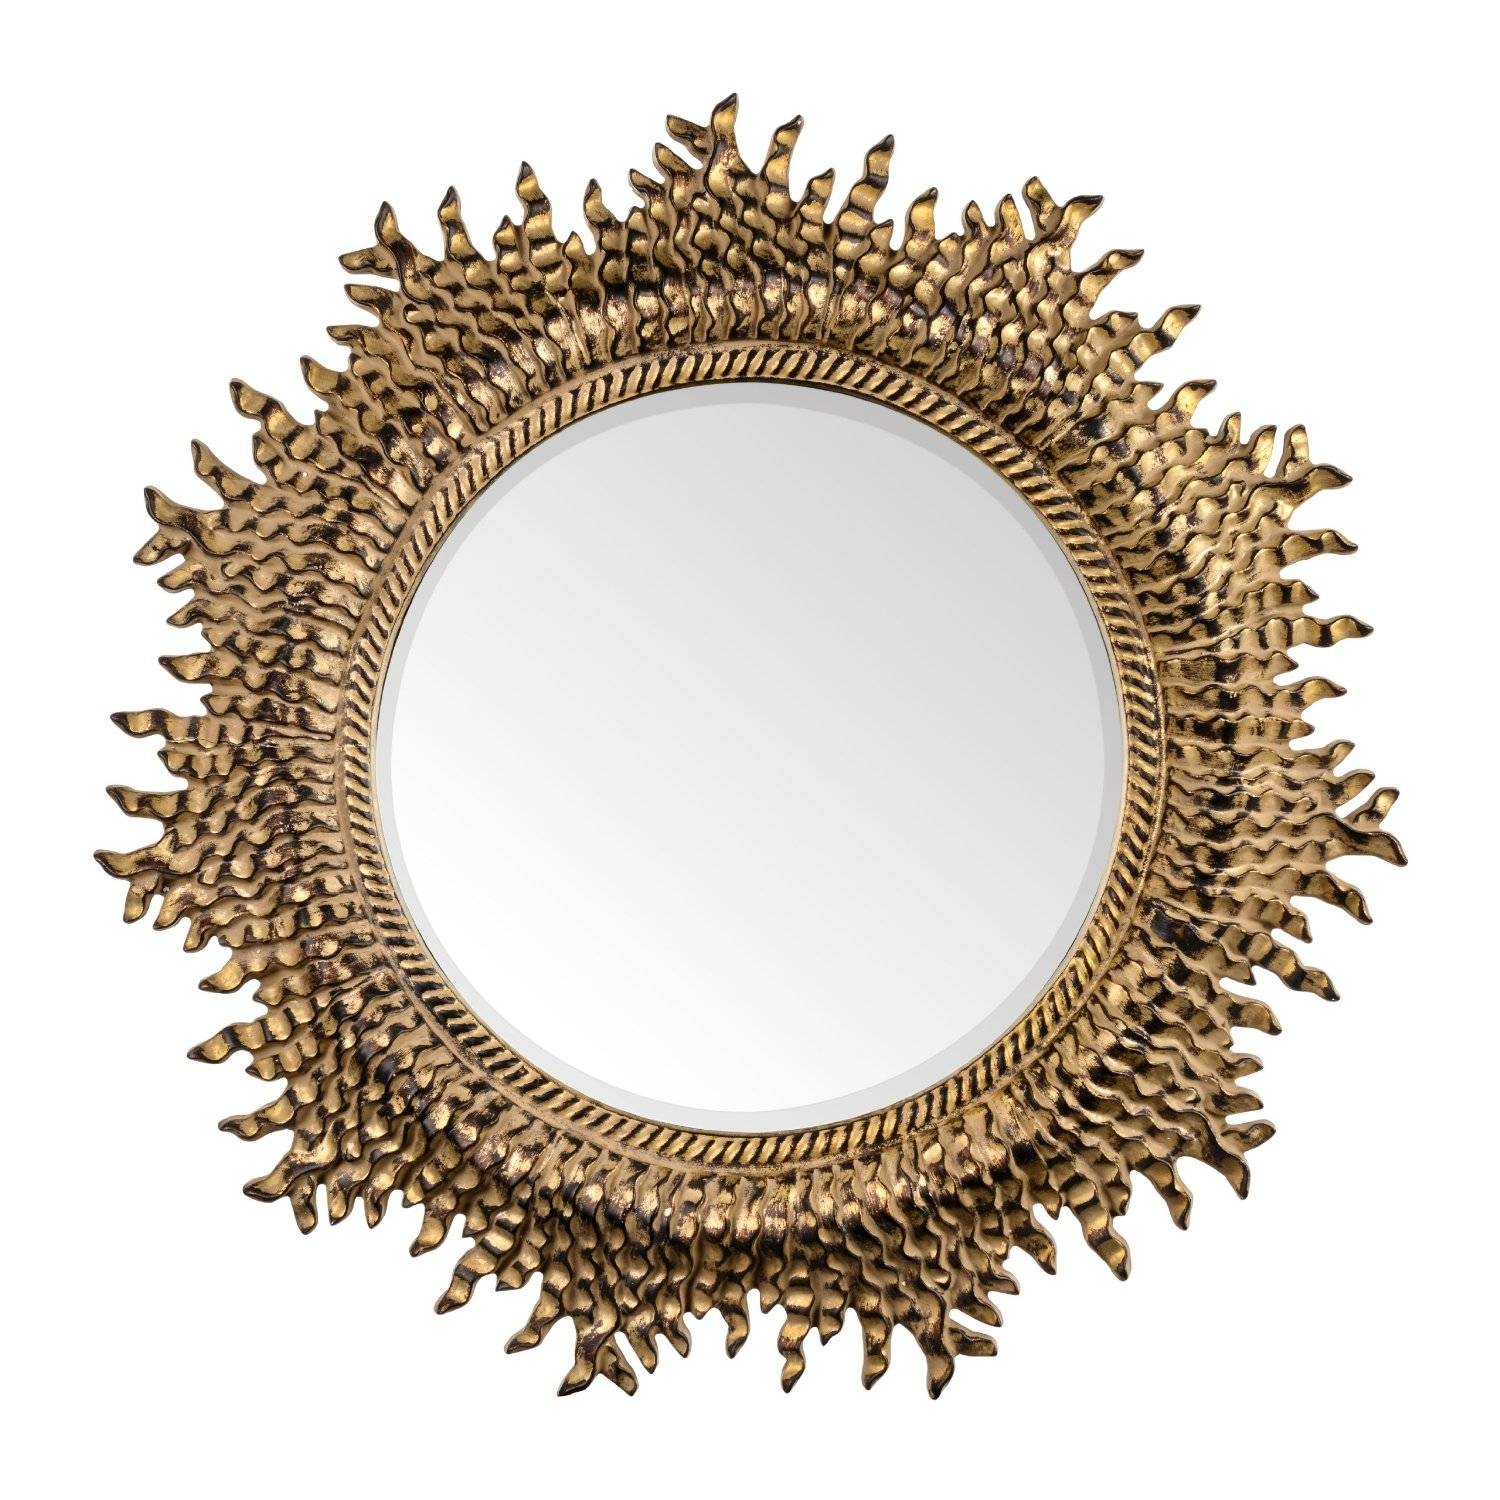 16 Ornate Mirrors For Your Home | Qosy with Antique Round Mirrors (Image 2 of 25)